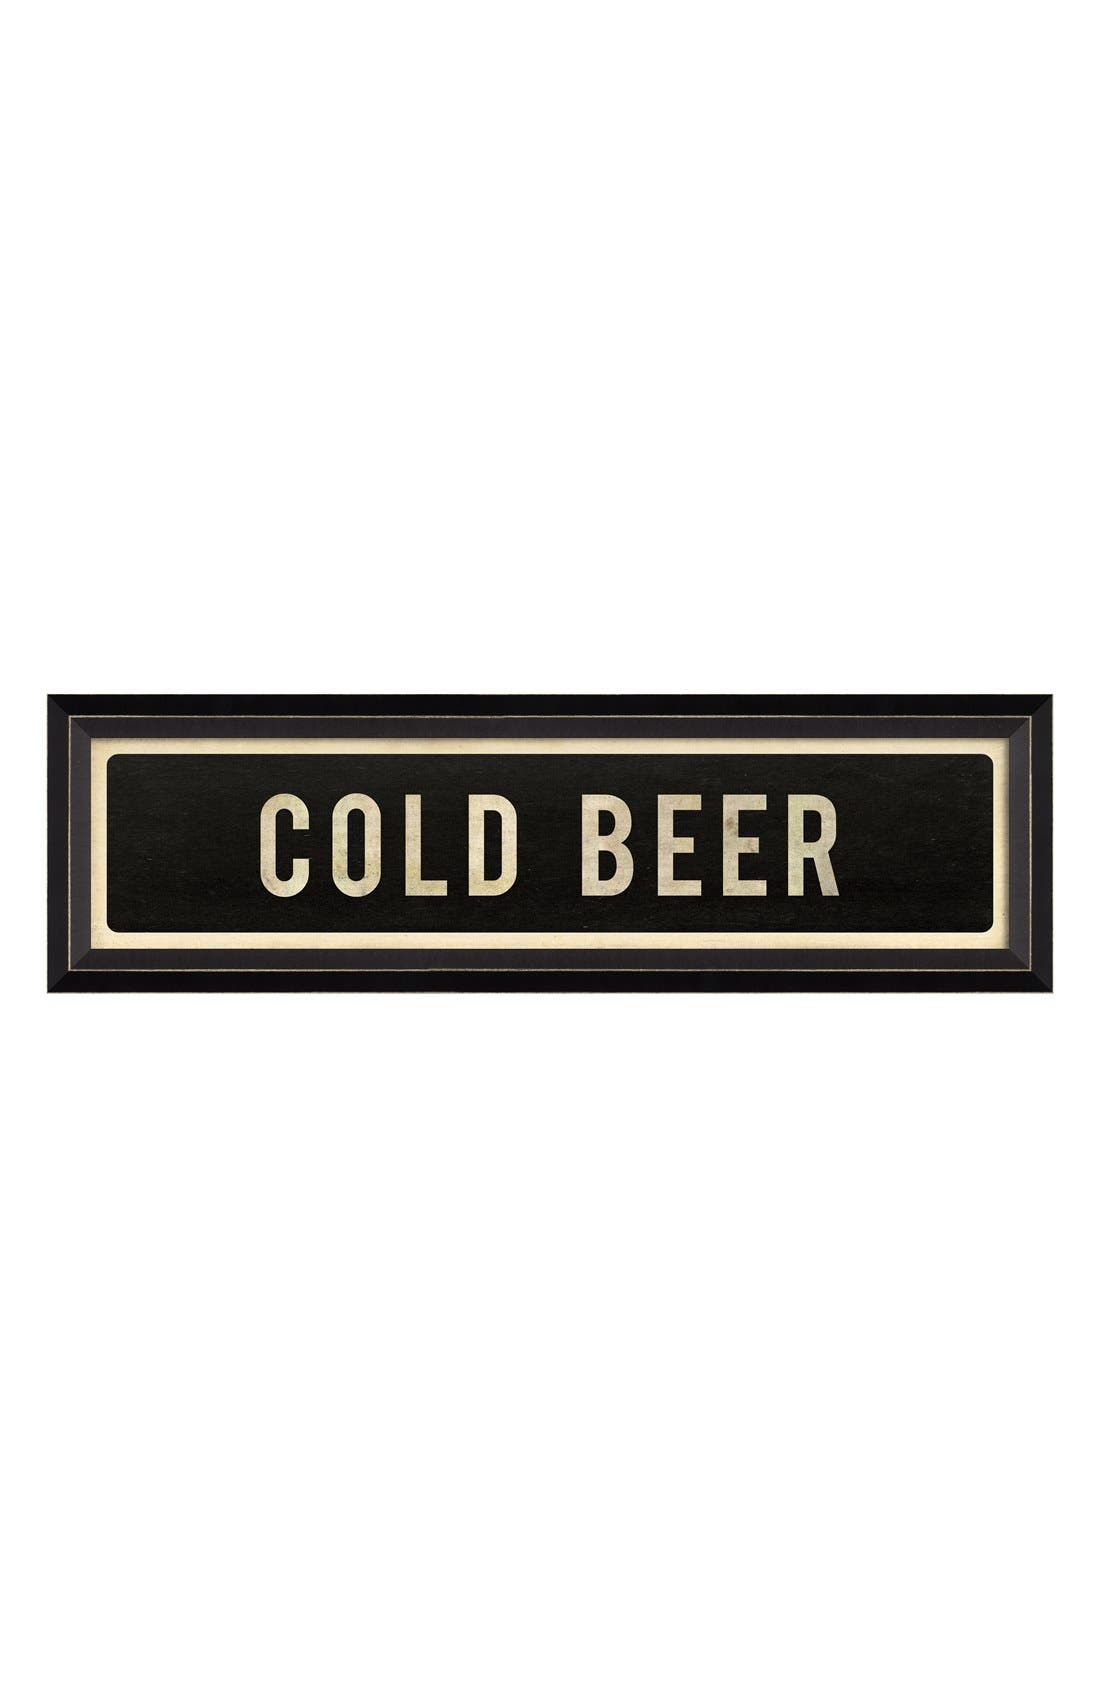 Alternate Image 1 Selected - Spicher and Company 'Cold Beer' Vintage Look Street Sign Artwork